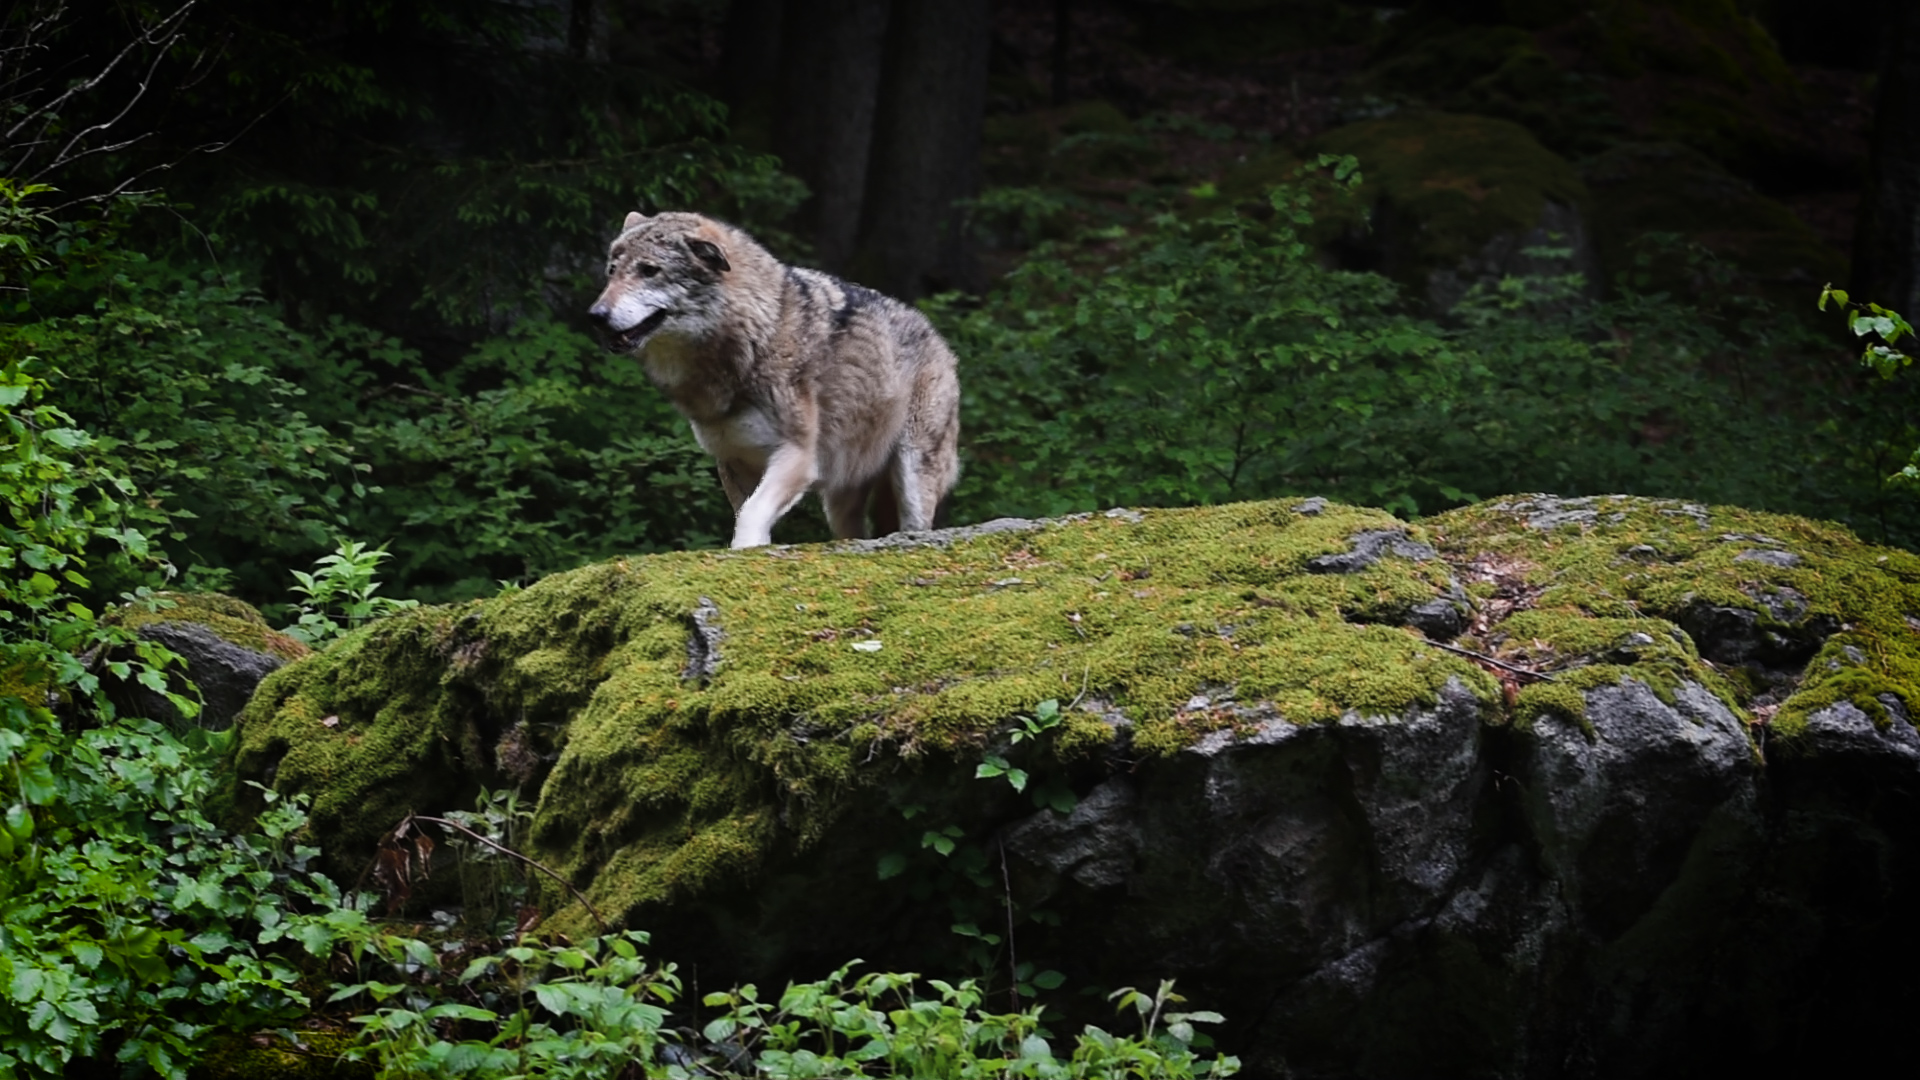 A wolf in the Kresna Gorge